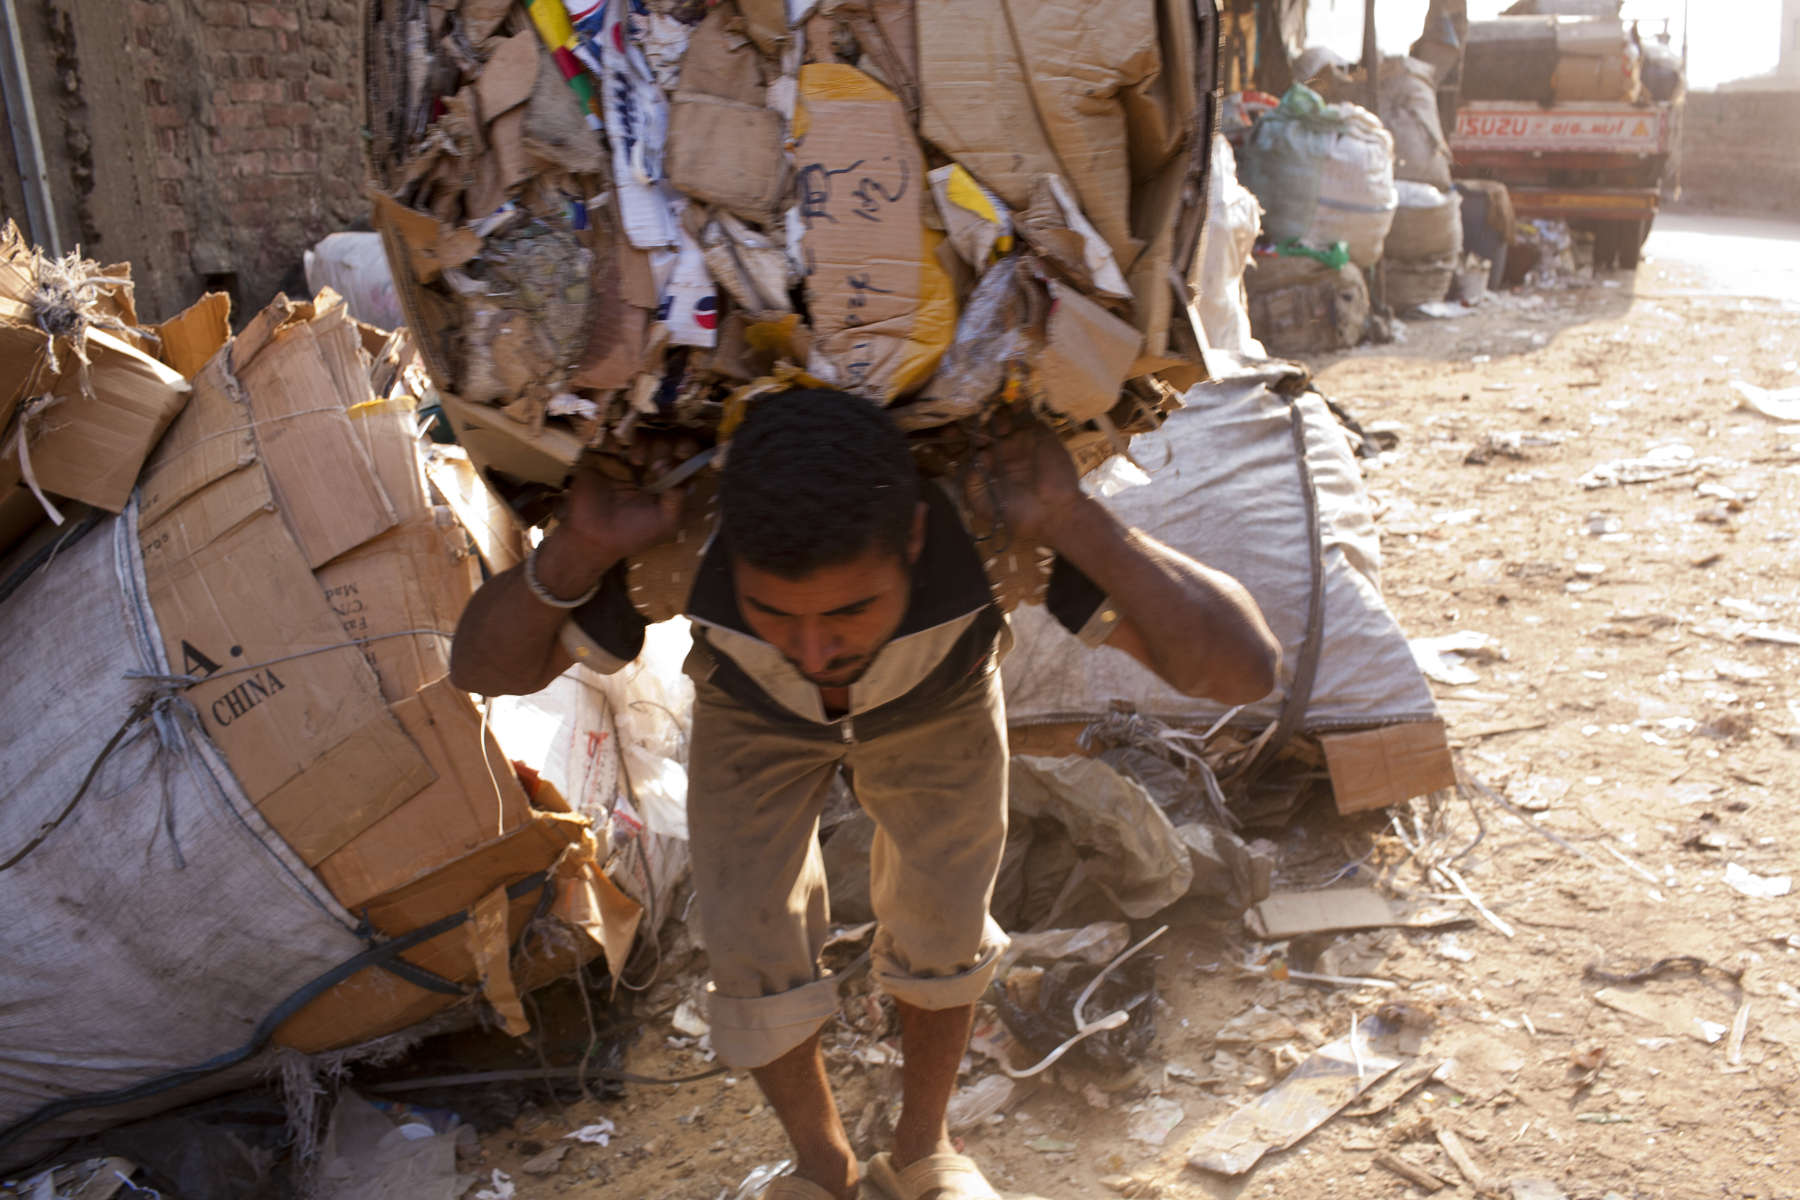 "A Zabaleen man hauls a load of cardboard for recycling through a dusty street in Moqqatam.Moqqatam is a suburb on the edge of Cairo and home to a people known as the Zabaleen, said to be the world's greatest waste recyclers. The Zabaleen, which means plainly enough, ""the garbage collectors"", pick up around 4,000 tons of Cairo's waste each day. American researchers have shown that the Zabaleen recycle 85% of this garbage into something useful: a higher rate than anywhere else on the planet. The men do two shifts leaving about 4am and again around 9am. The rubbish is taken back to Moqqatam for the women to sit in and sort through. The organic waste is fed to livestock (the Zabaleen are originally swine herders), the rest sorted for recycling. The future of the Zabaleen is uncertain: if the Cairo authorities get their way, this community of around 25,000 Coptic Christians living in a Muslim country will be gone, and with it, their unique lifestyle."